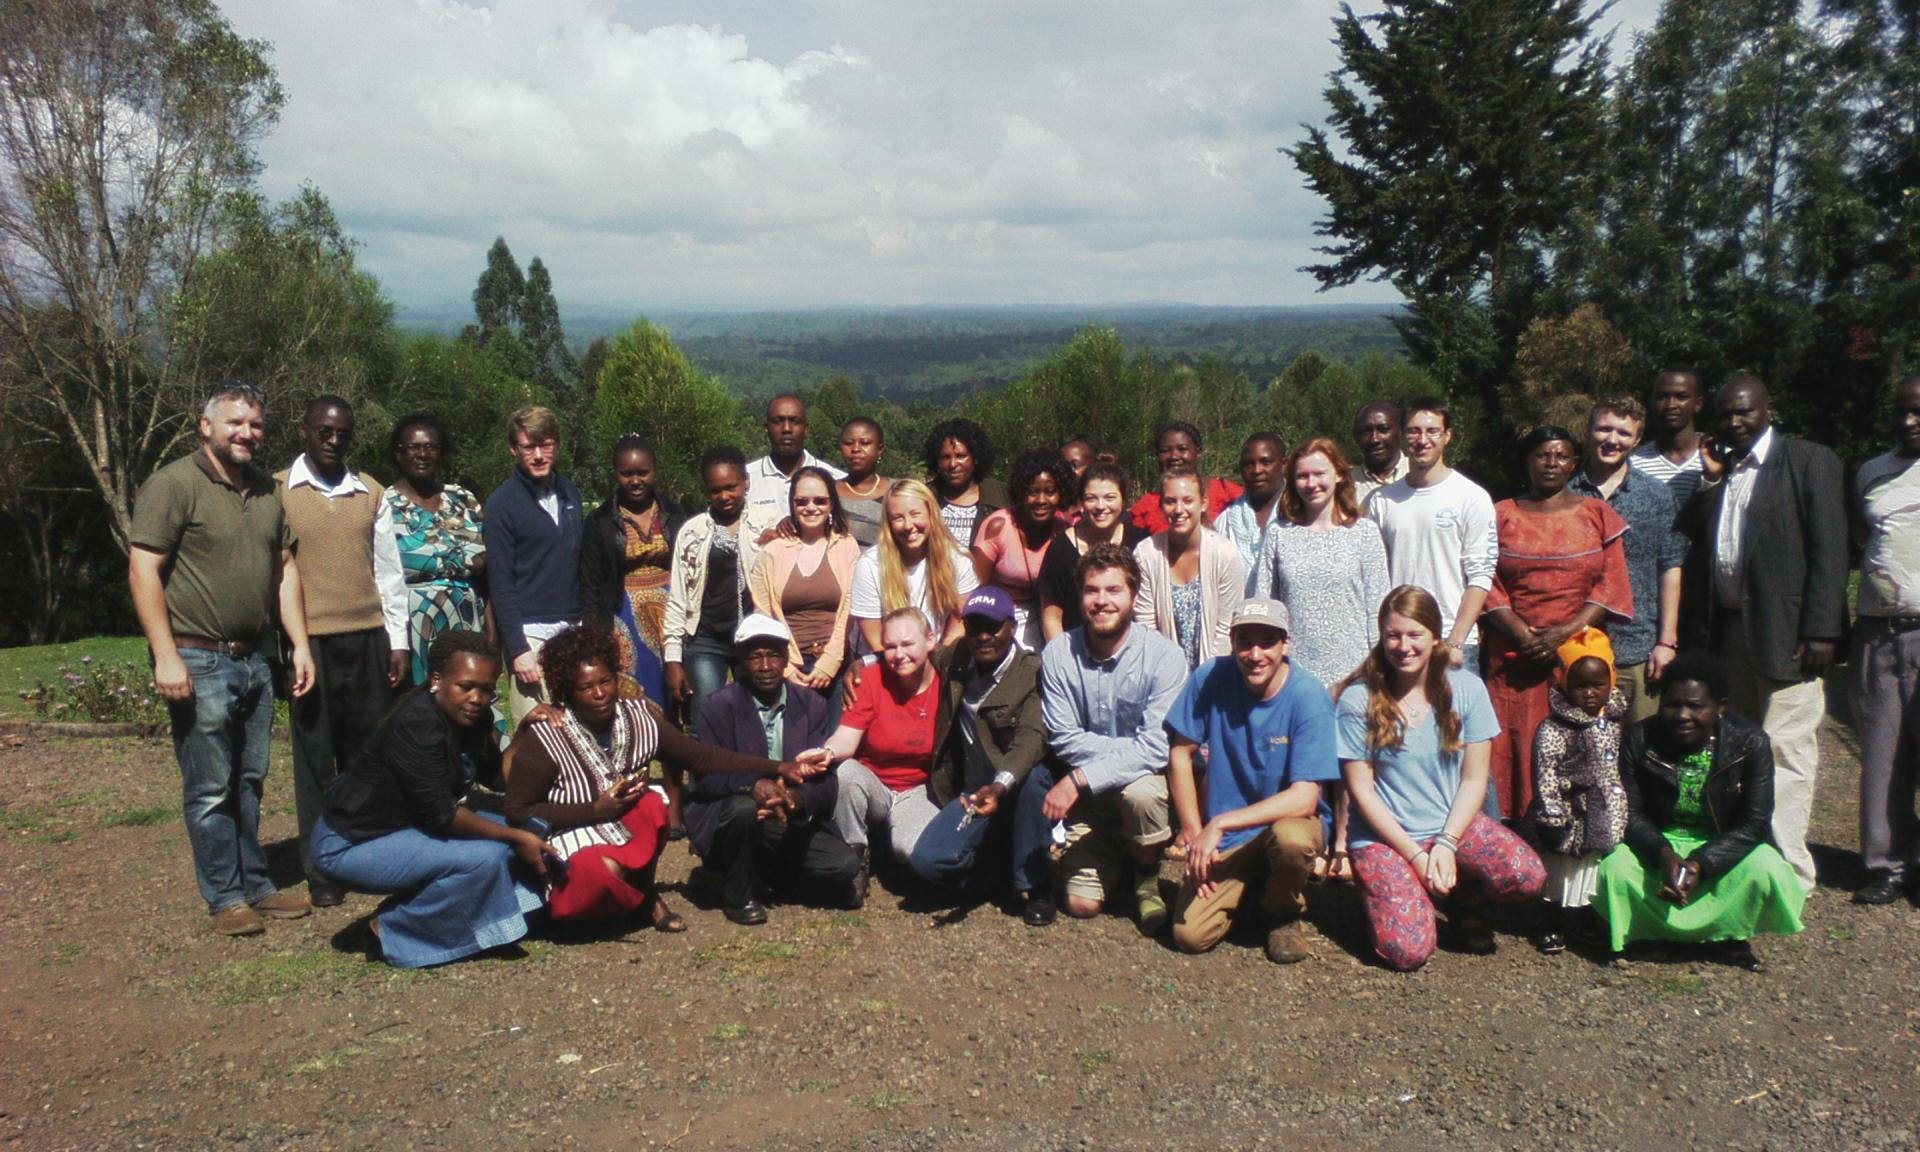 Half of the spring 2016 KSP says goodbye to their rural homestay families after a week of plucking tea and learning about farming in the foothills of the Aberdare Mountains in central Kenya.